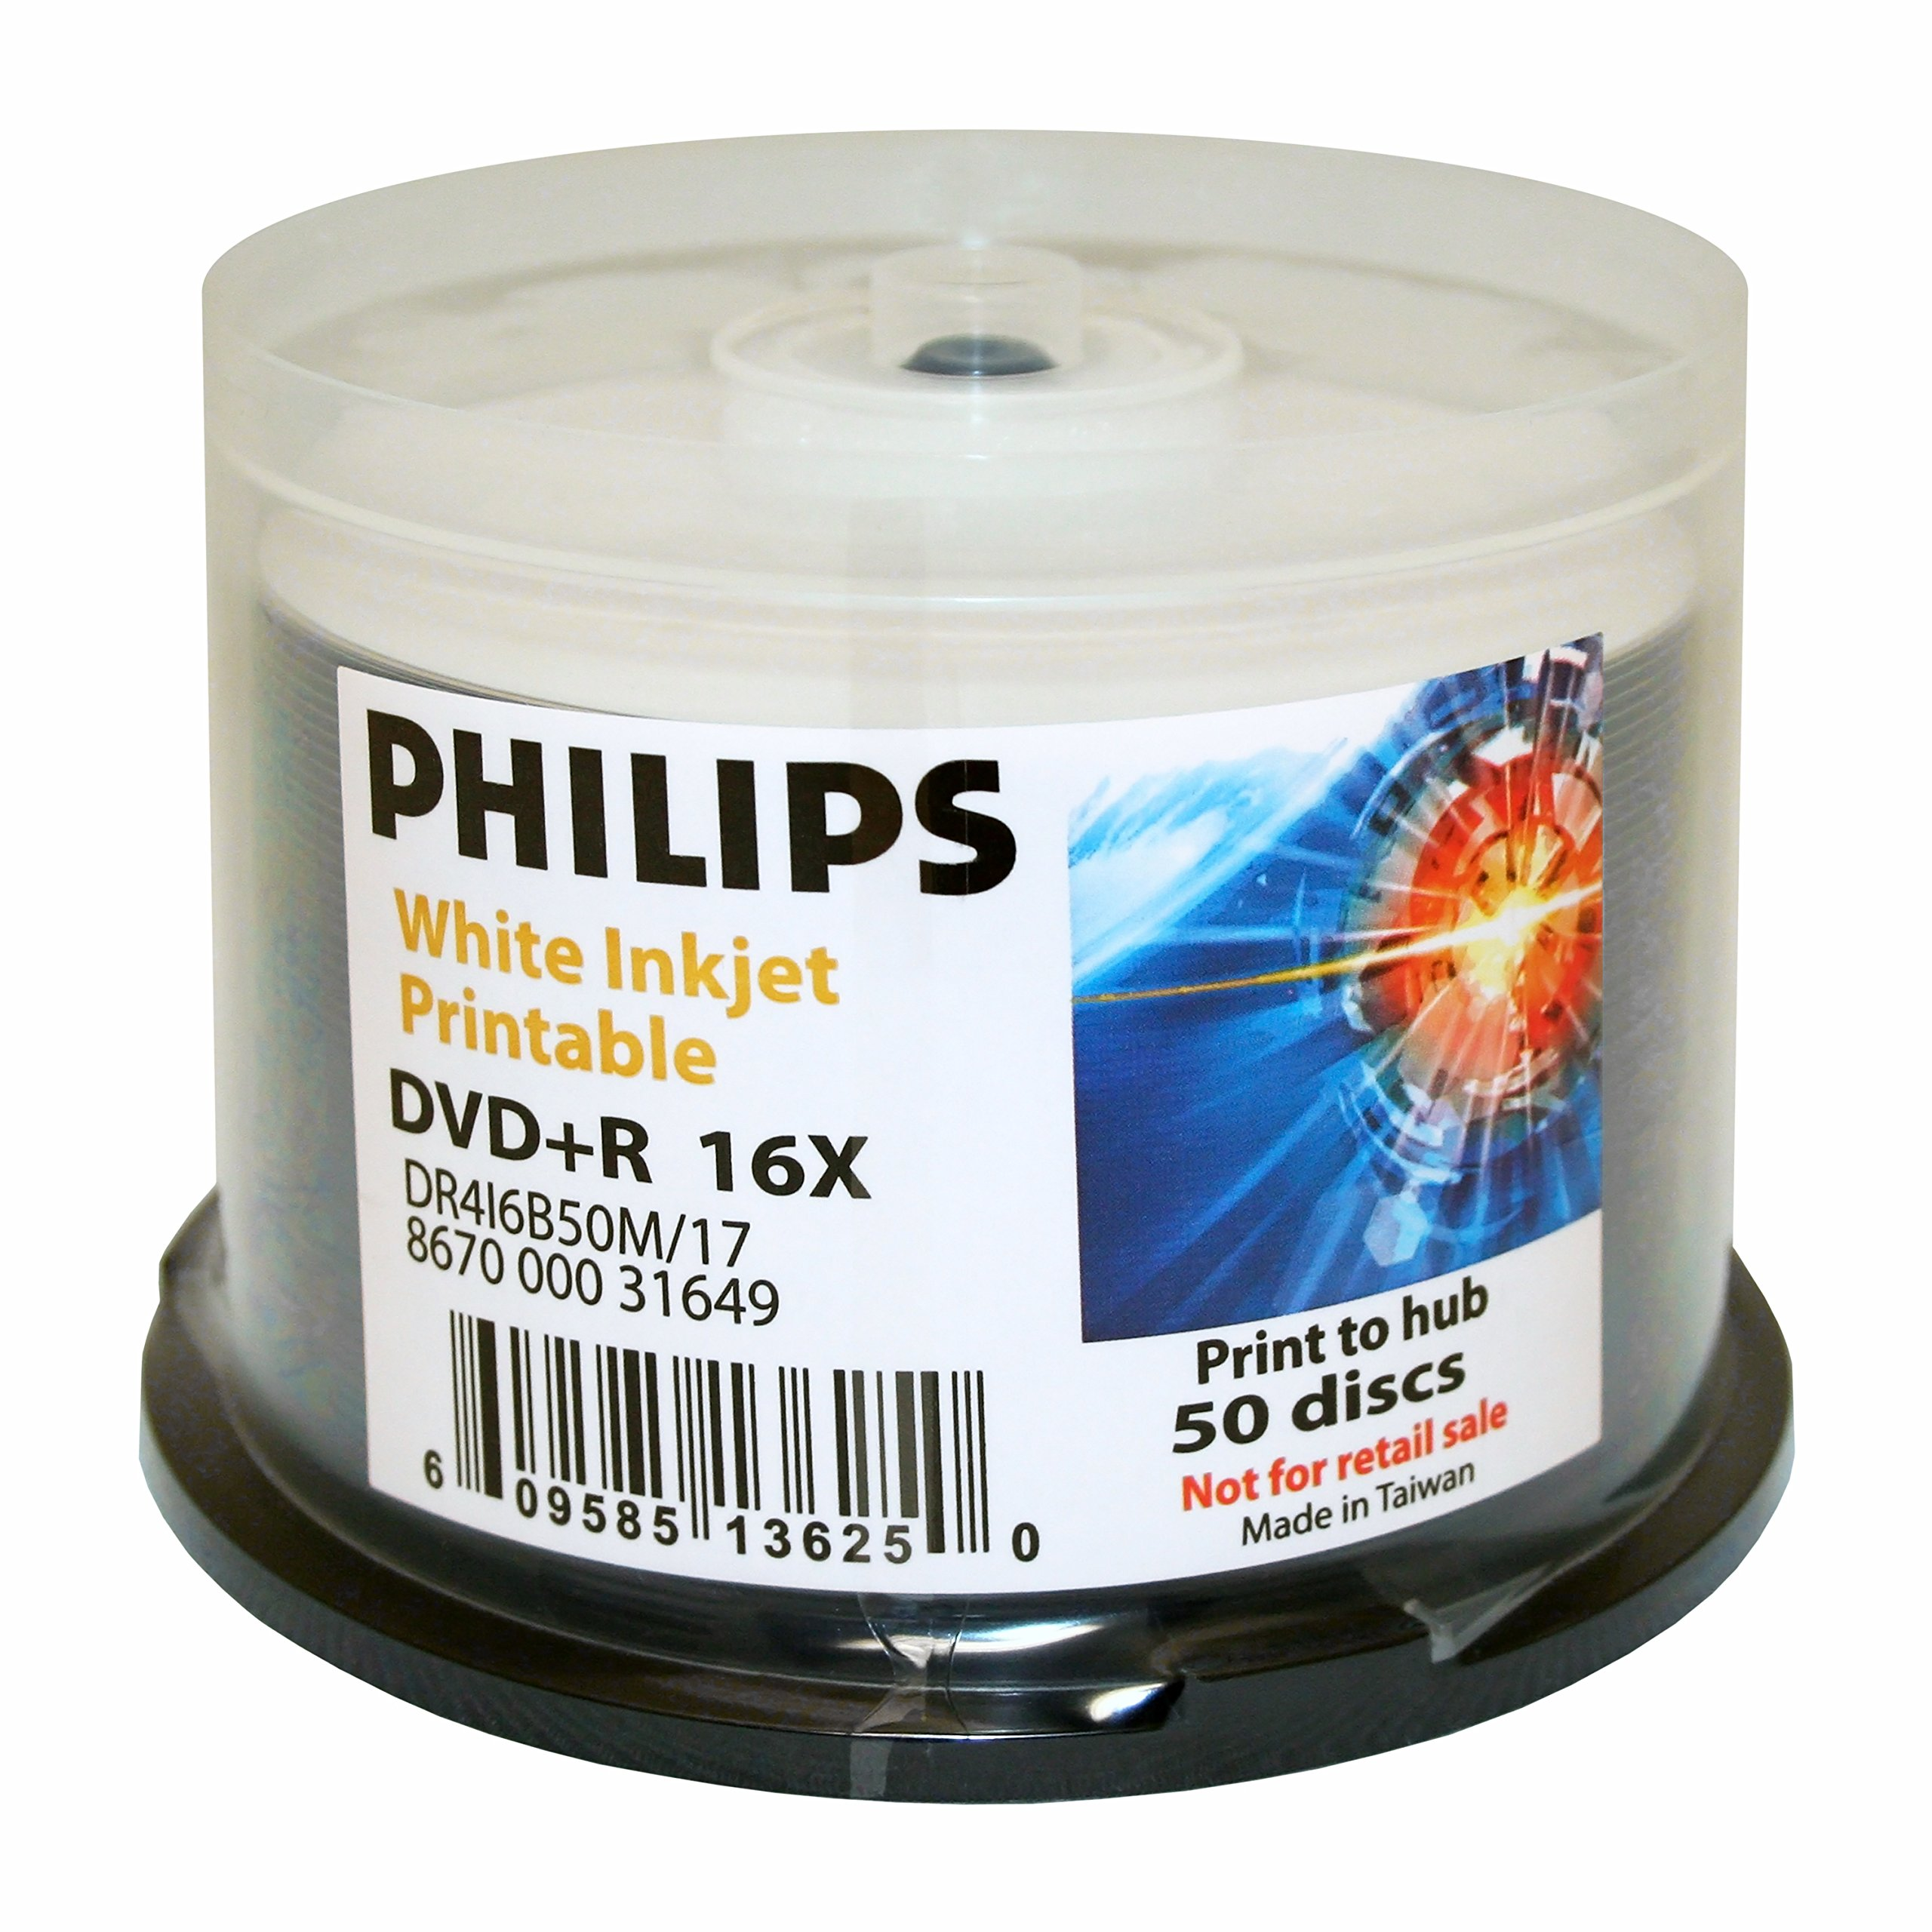 Philips DVD+R 16x Duplication Grade White Inkjet Printable to Hub 50pk Cake Box